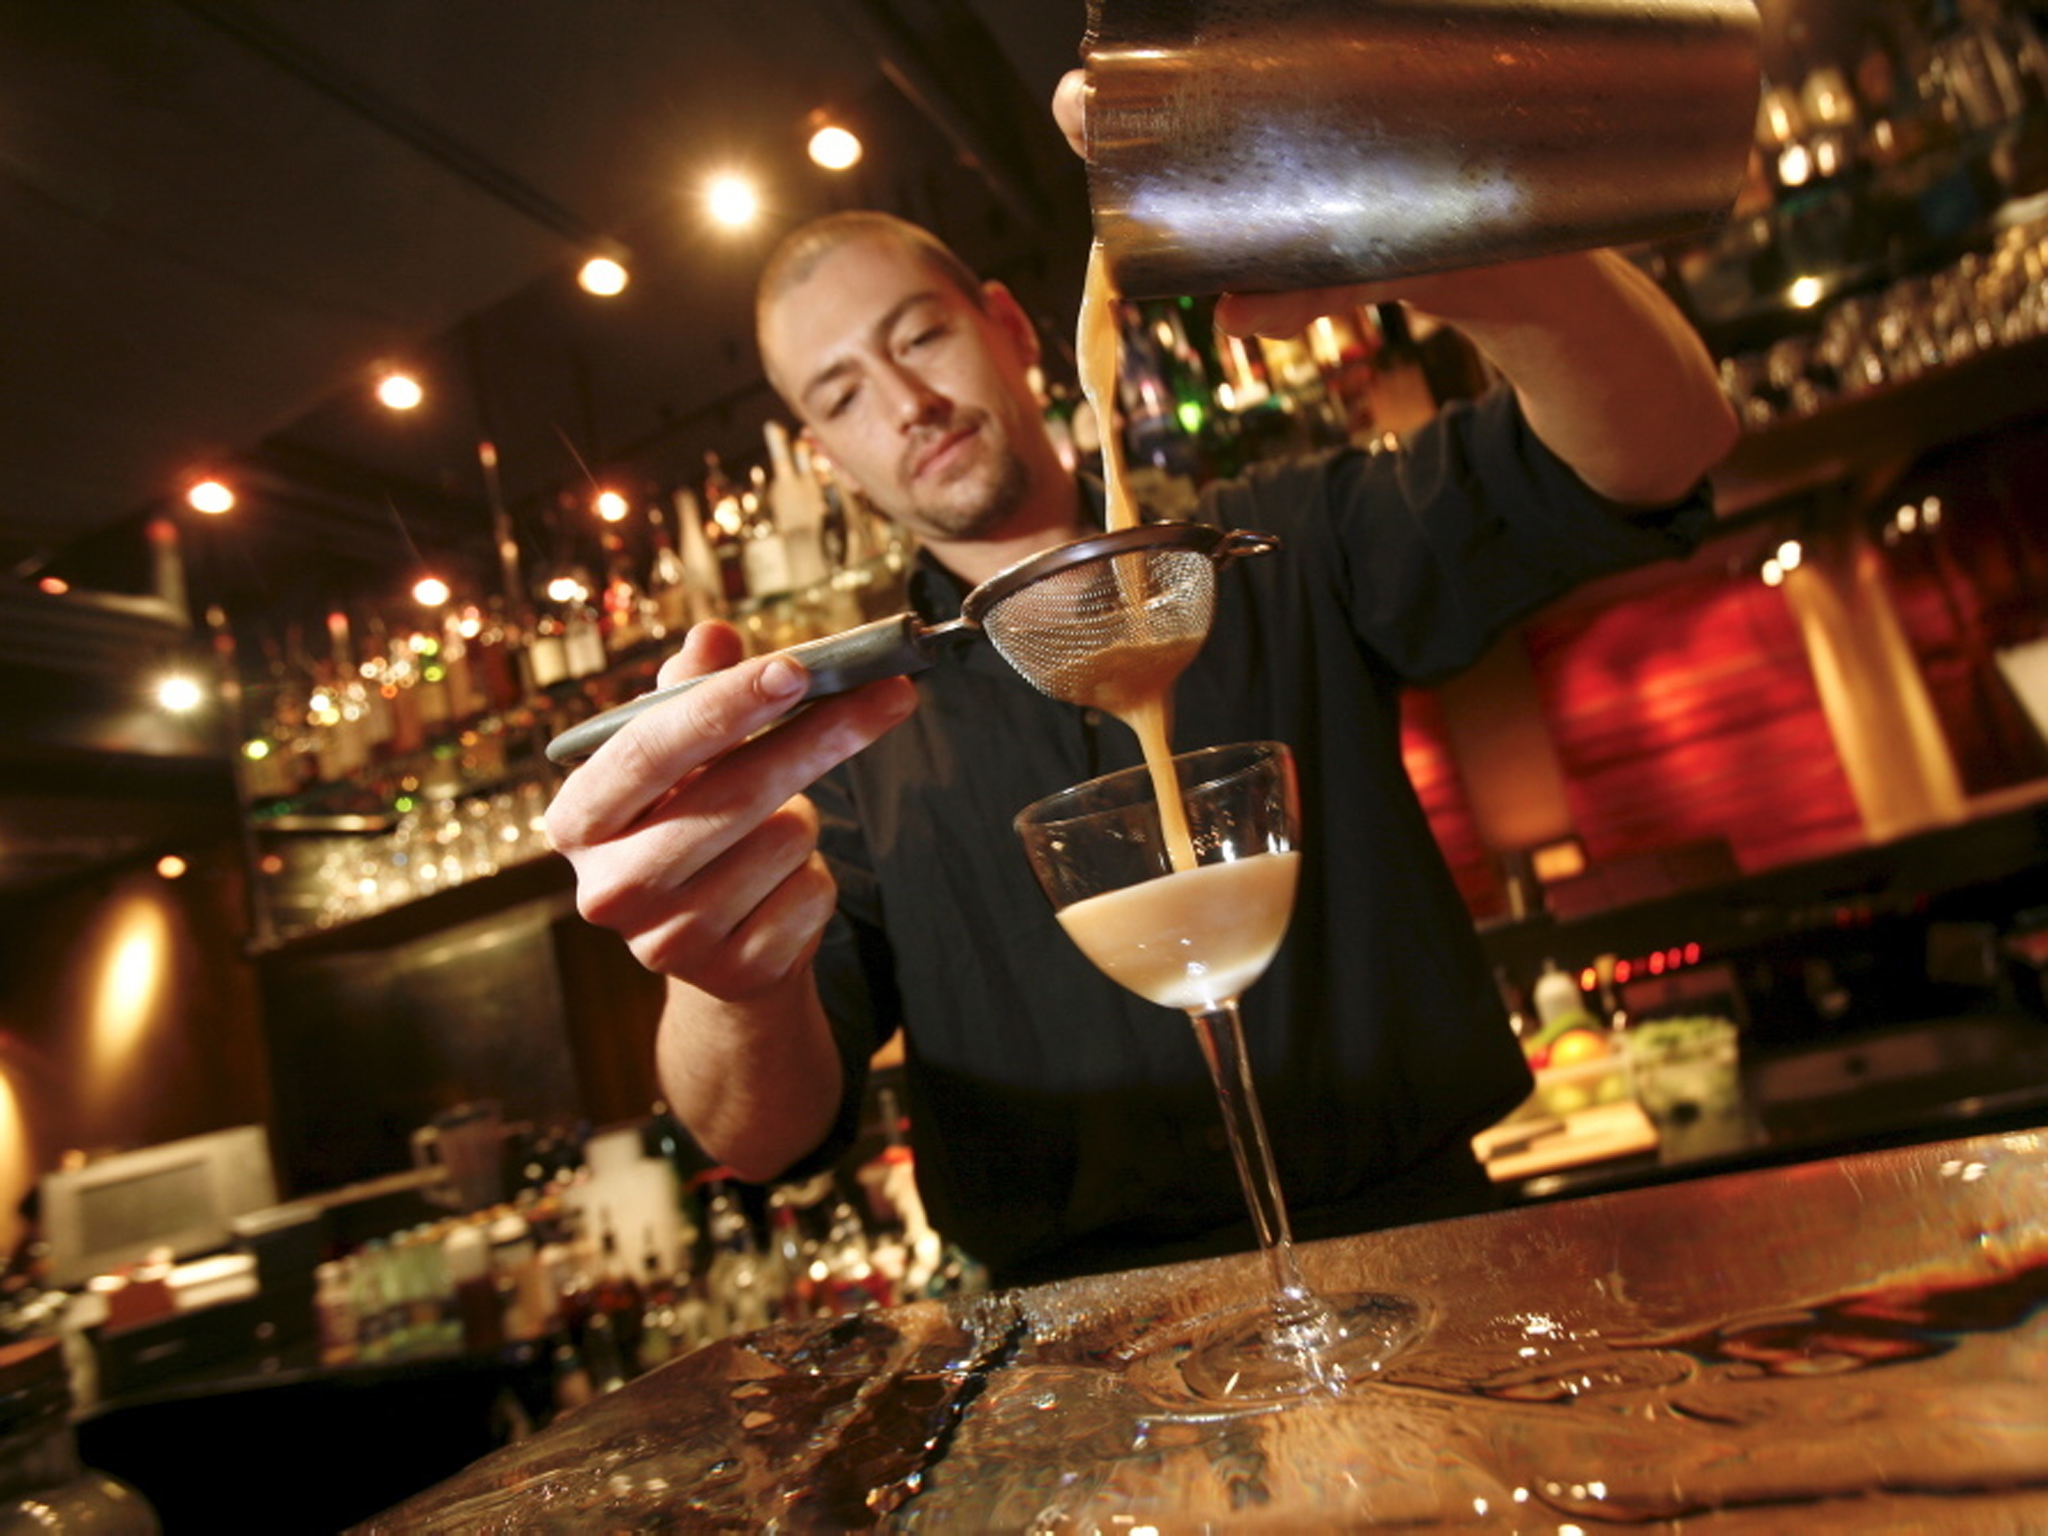 The 100 best bars and pubs in London - Shochu Lounge, Fitzrovia